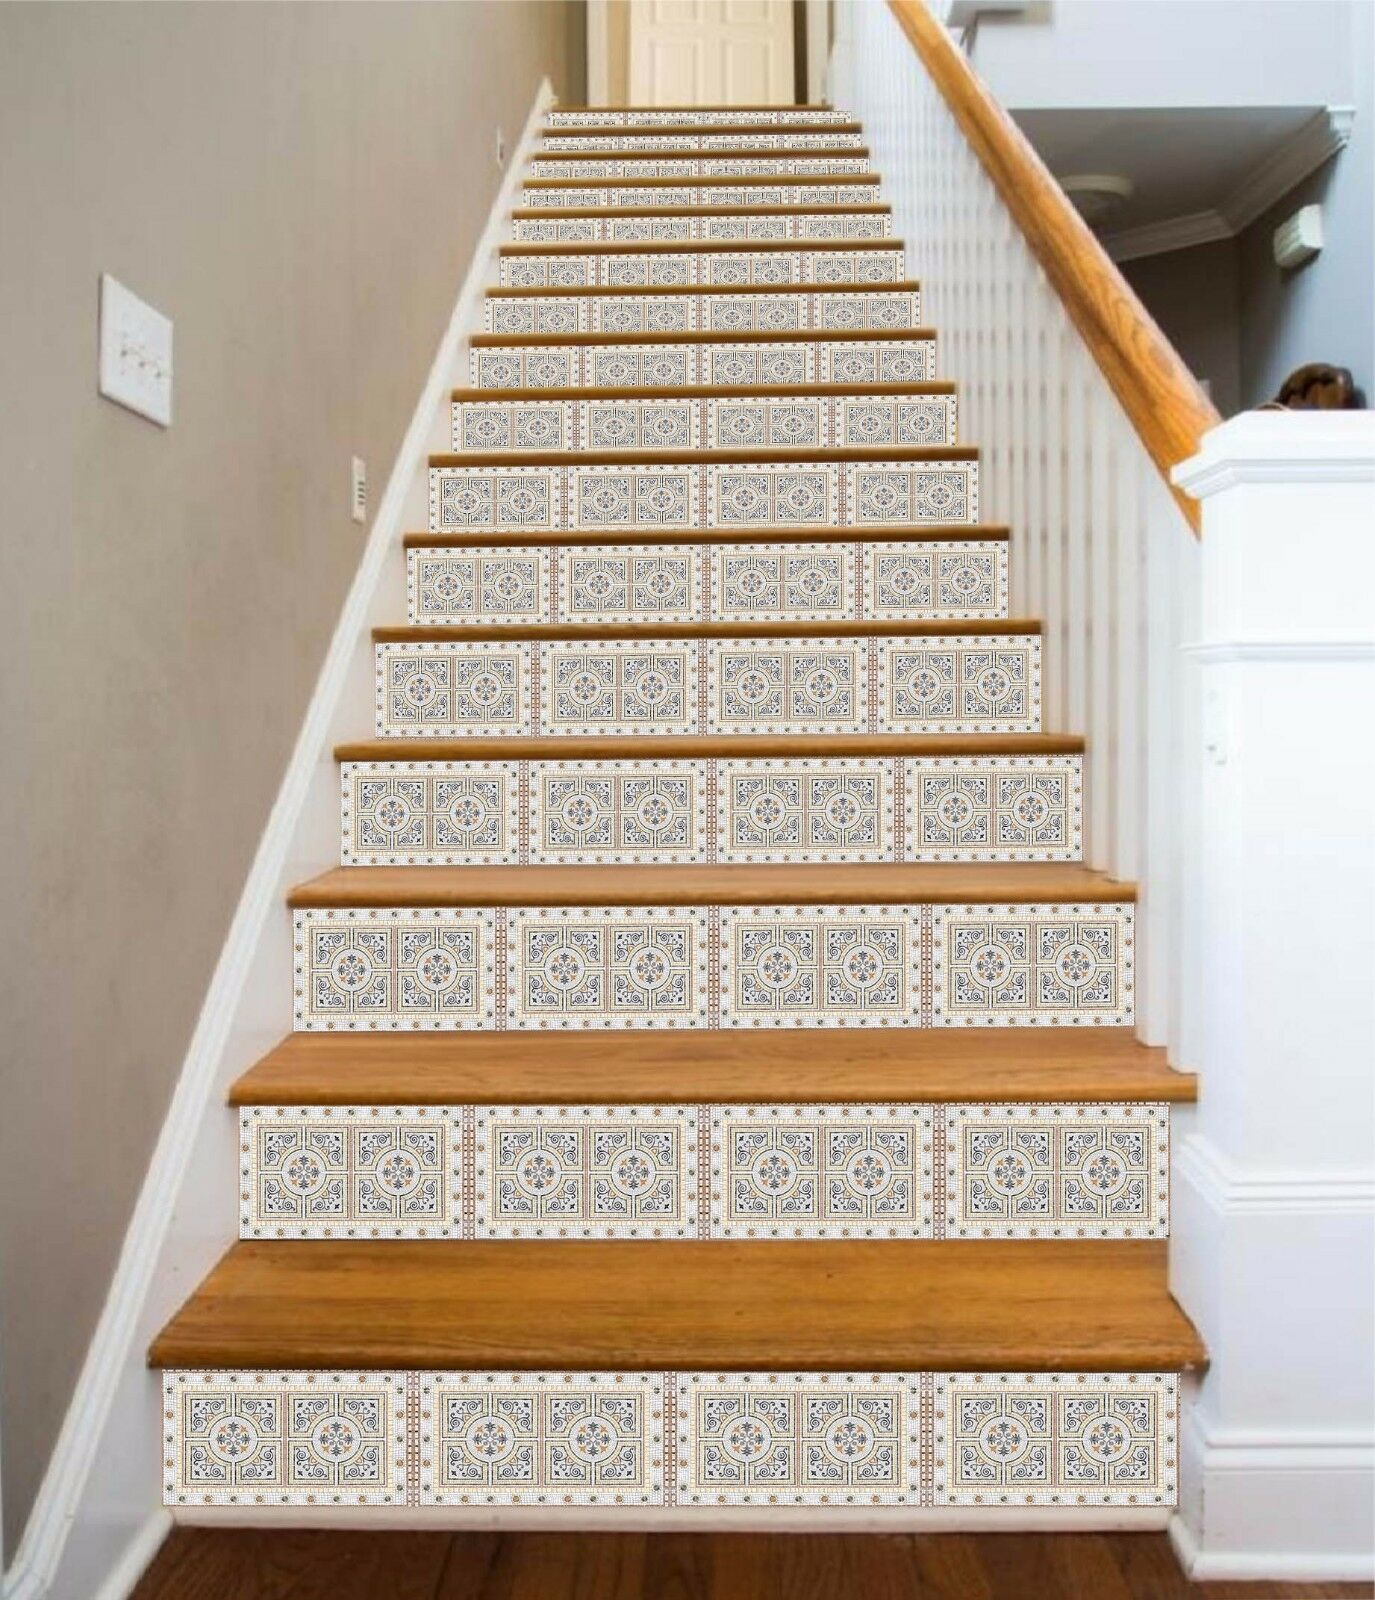 3D Slices Pattern 3 Stair Risers Decoration Photo Mural Vinyl Decal Wallpaper AU